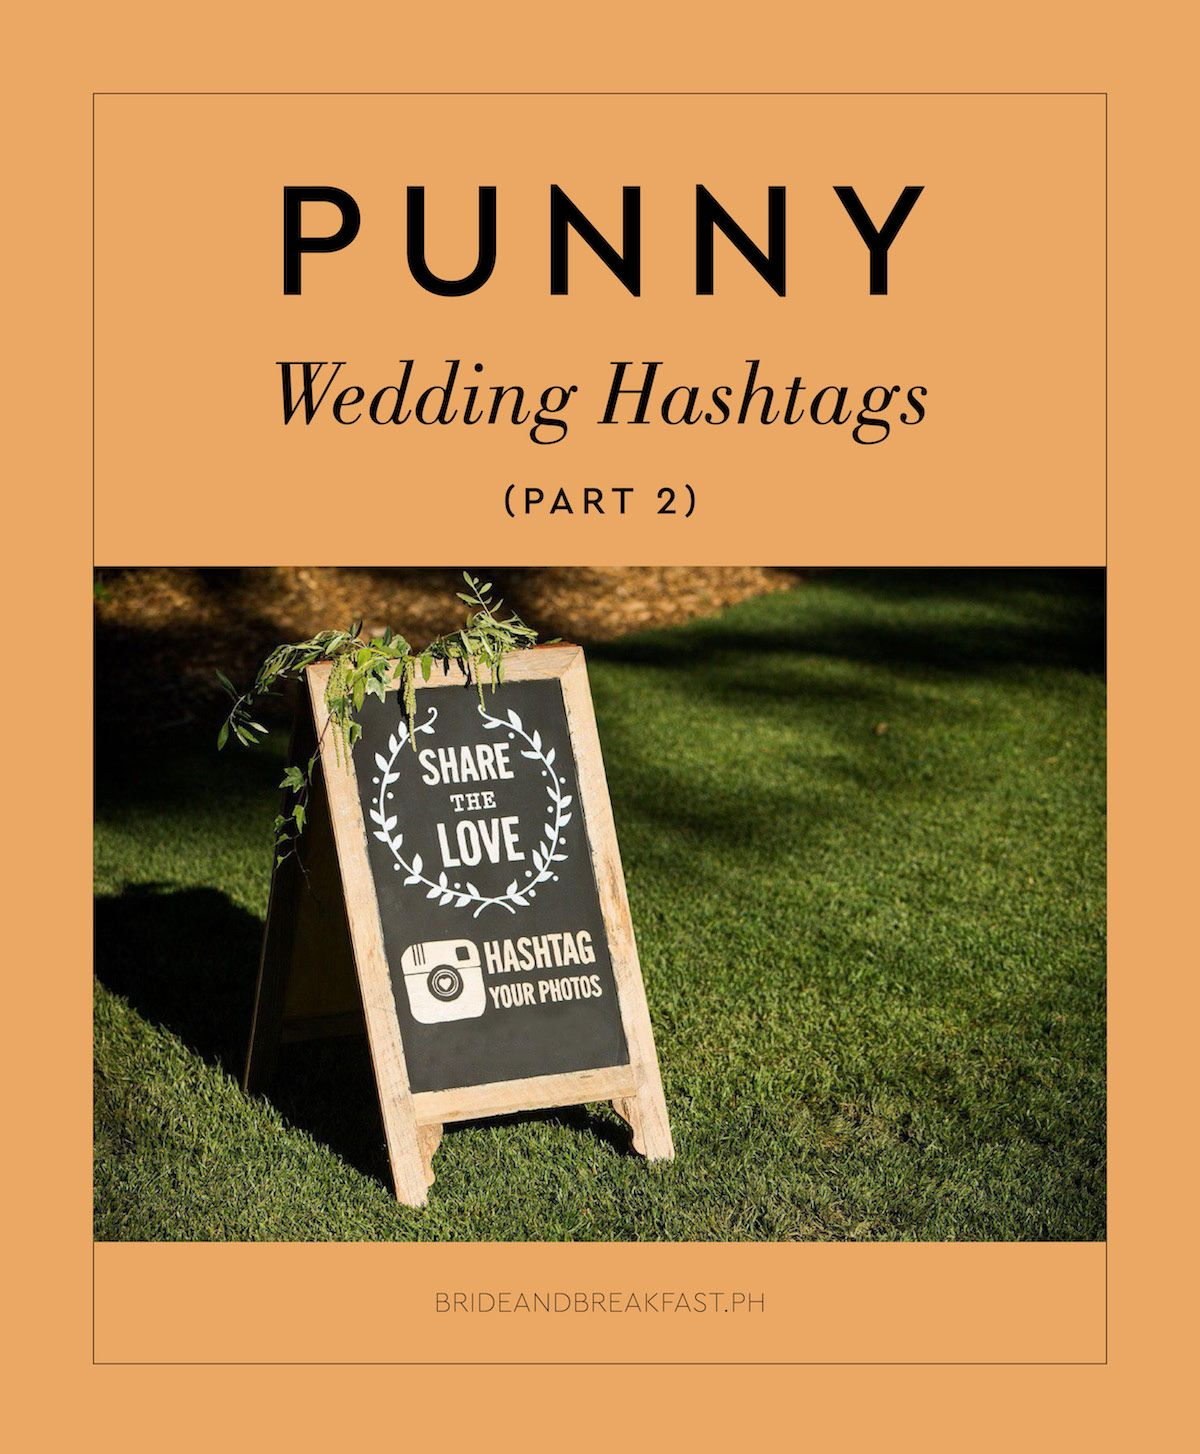 15 Of The Punniest Wedding Hashtags We Ve Seen So Far Part 2 Wedding Hashtag Funny Wedding Hashtags Wedding Hashtag Generator